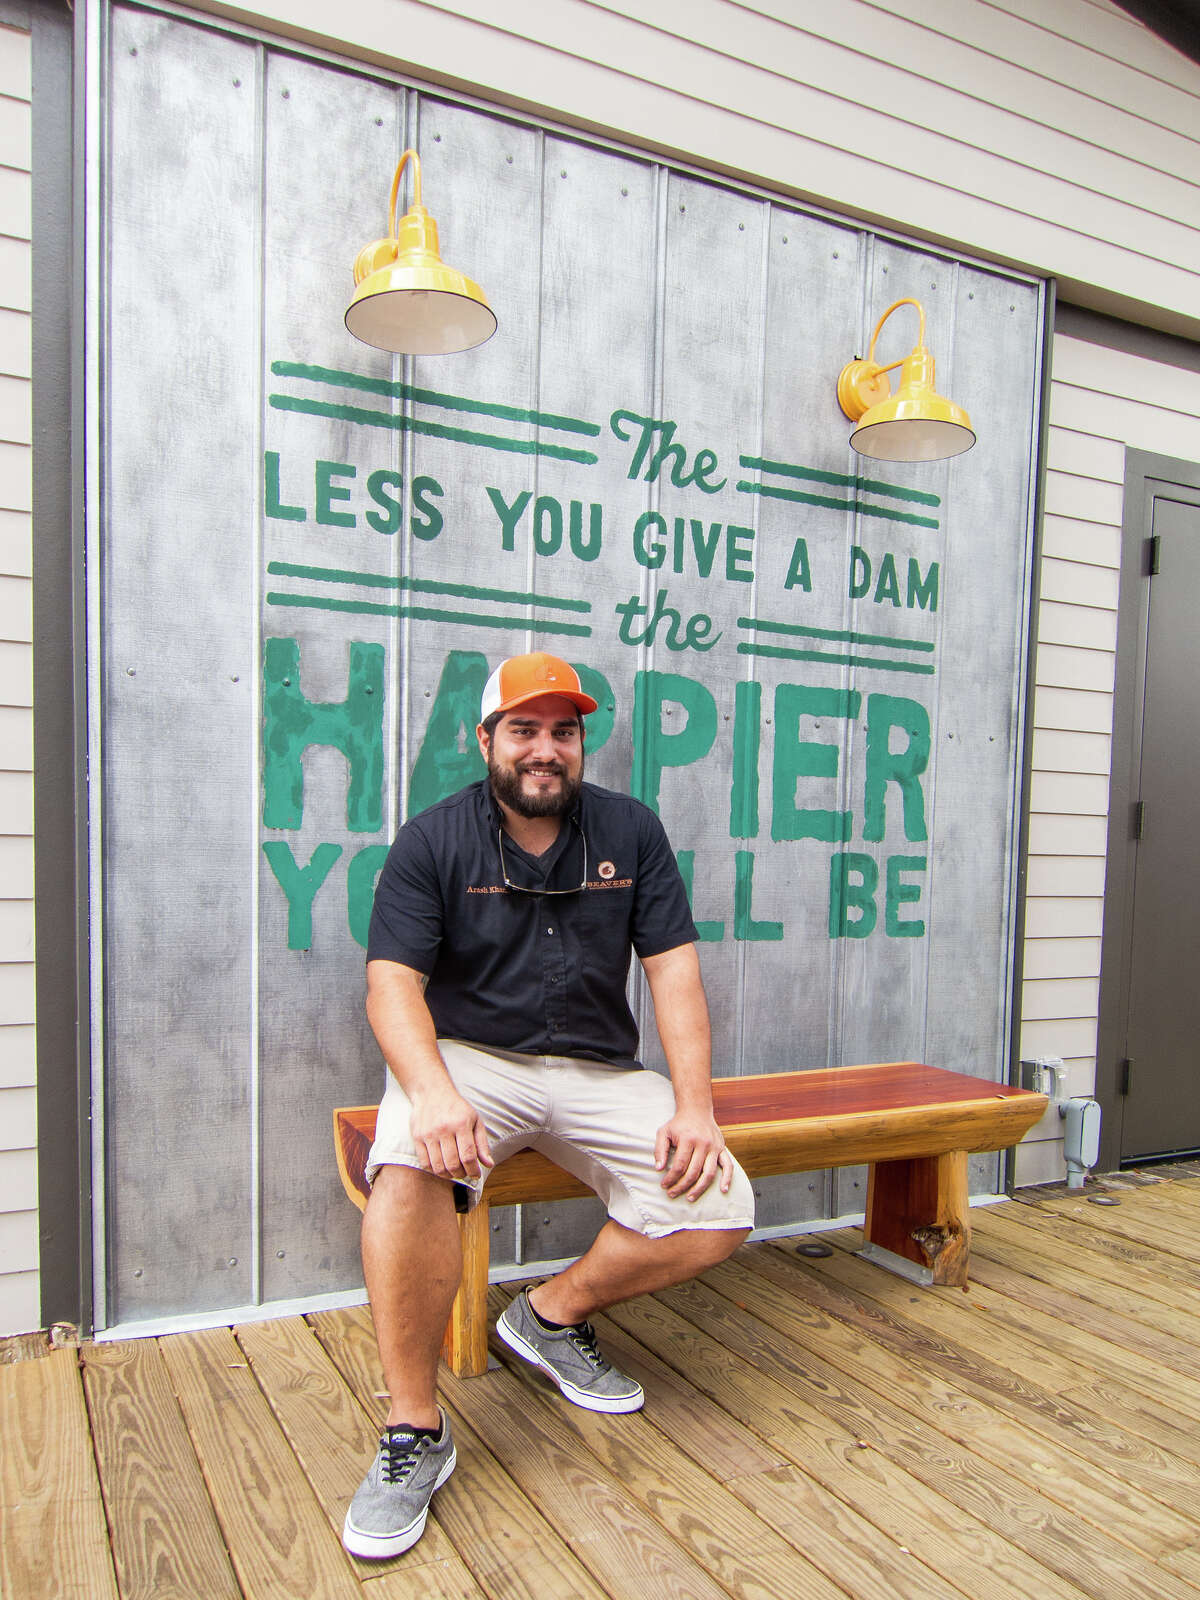 Pimaster Arash Kharat of Beaver's on Westheimer will participate in the inaugural HOU-ATX BBQ Throwdown on Dec. 3 at Saint Arnold Brewing Company. Sponsored by the Houston Barbecue Festival and Saint Arnold, the event features top barbecue restaurants from the Houston and Austin area in a competition for the perfect Texas barbecue dish.